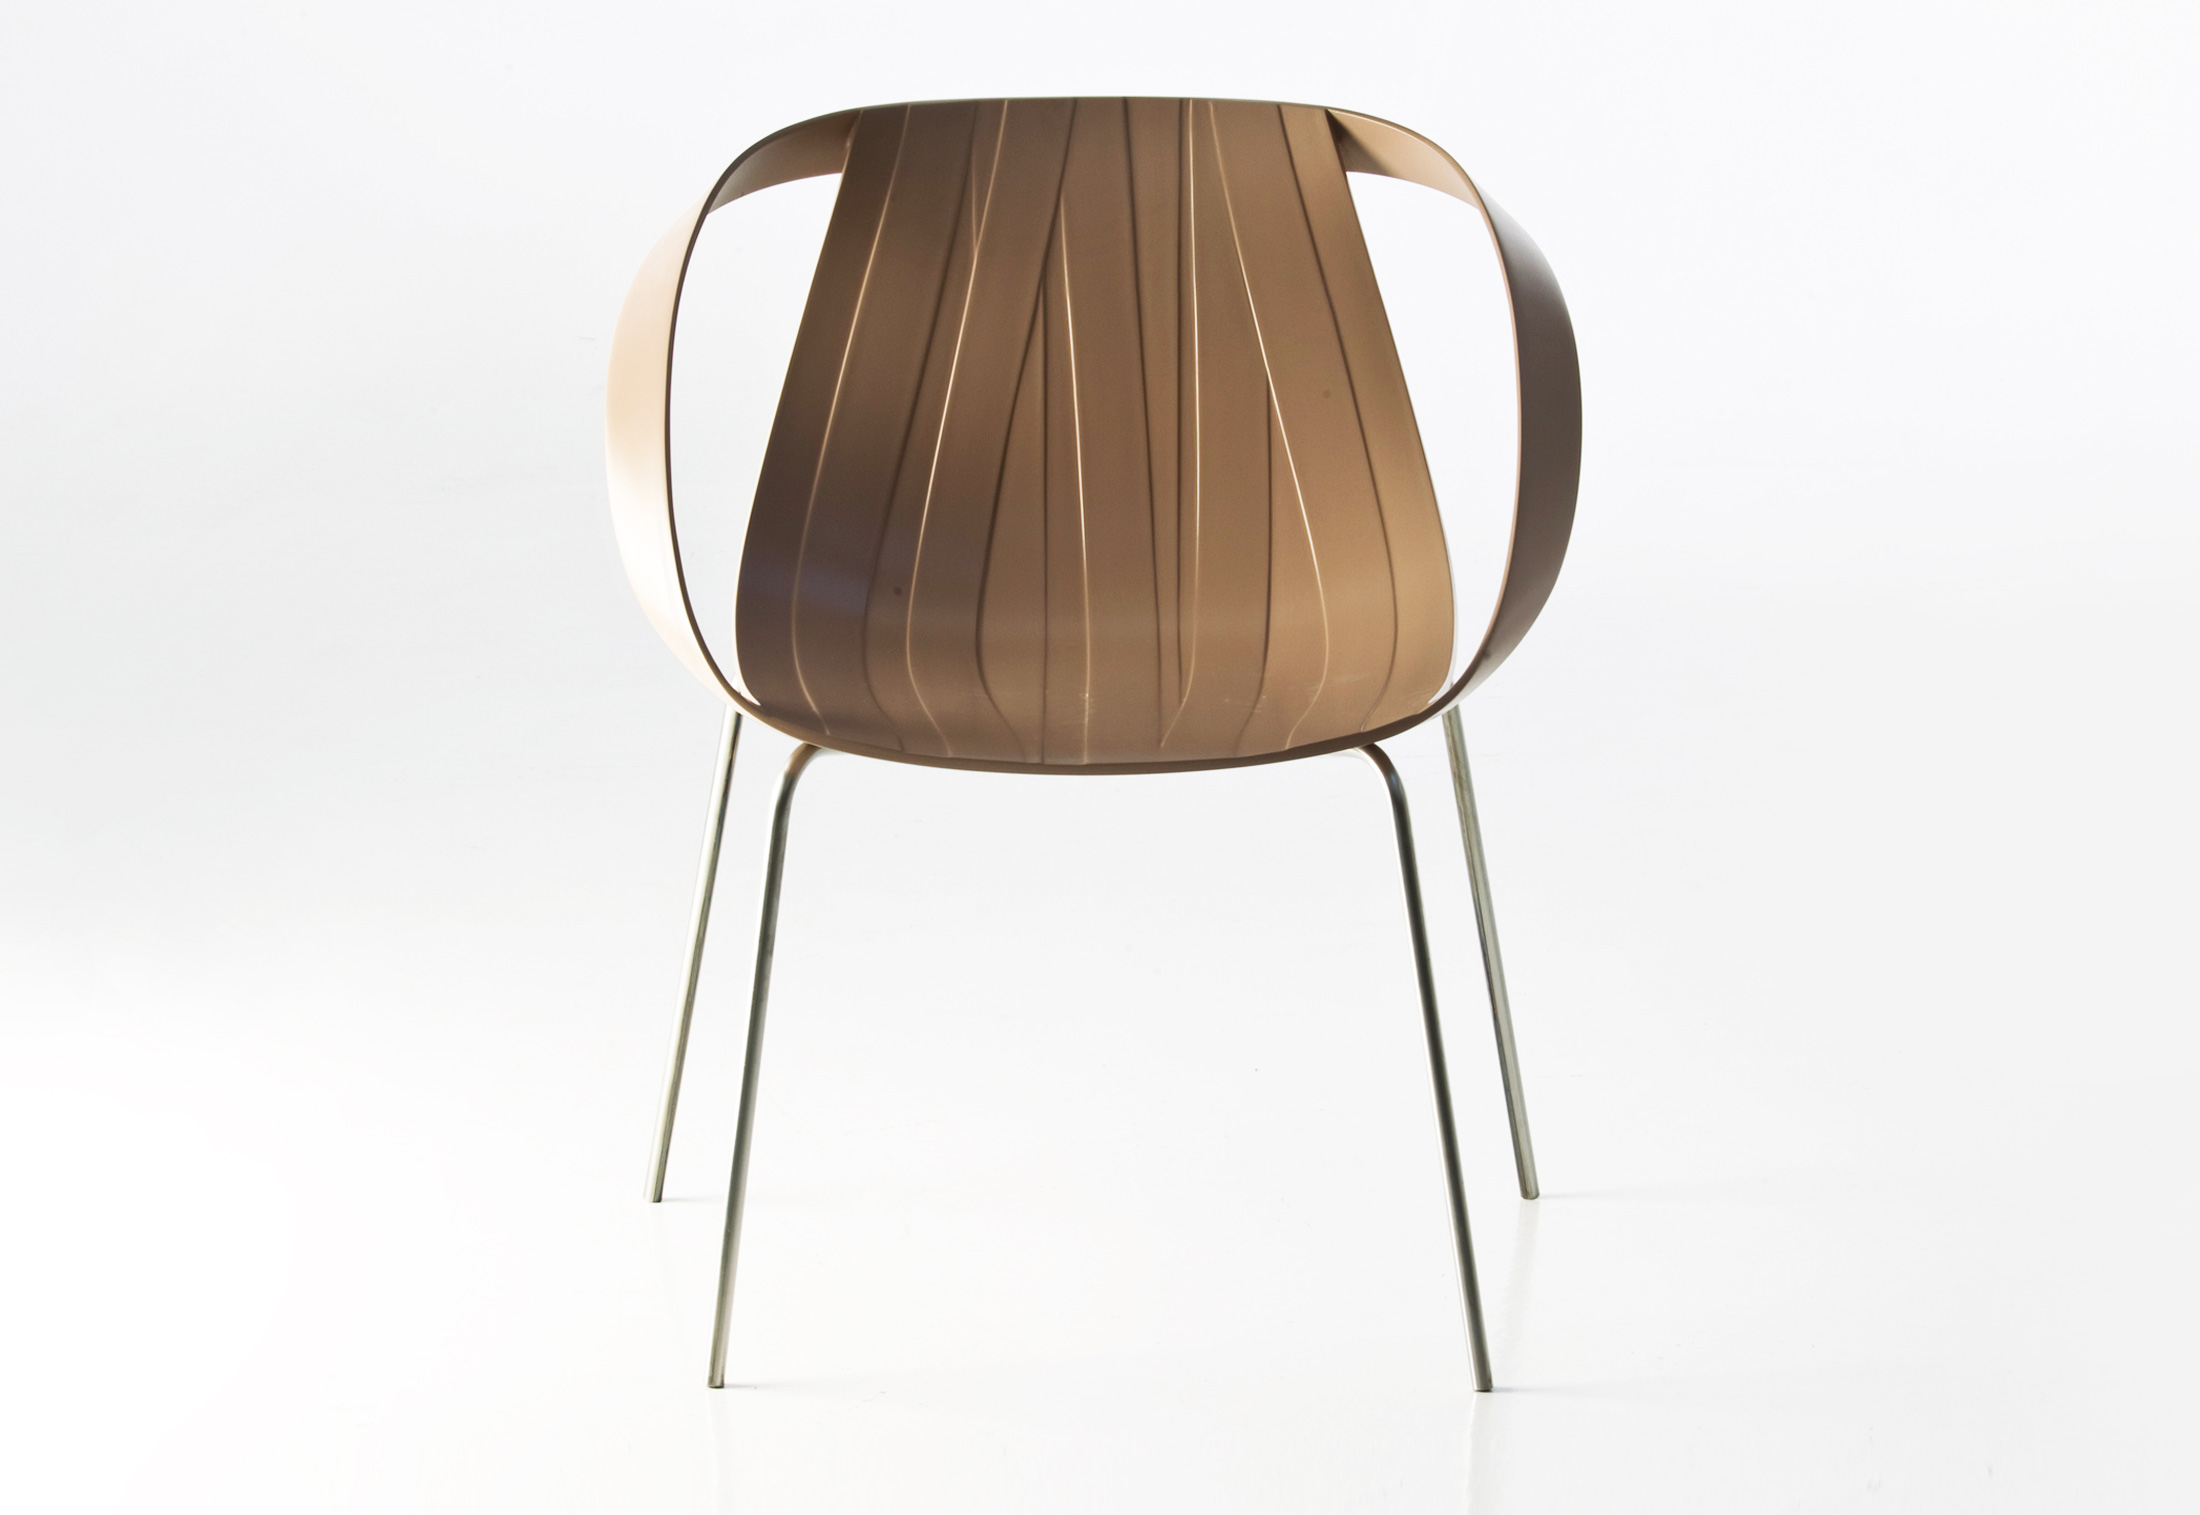 Impossible Wood by Moroso | STYLEPARK